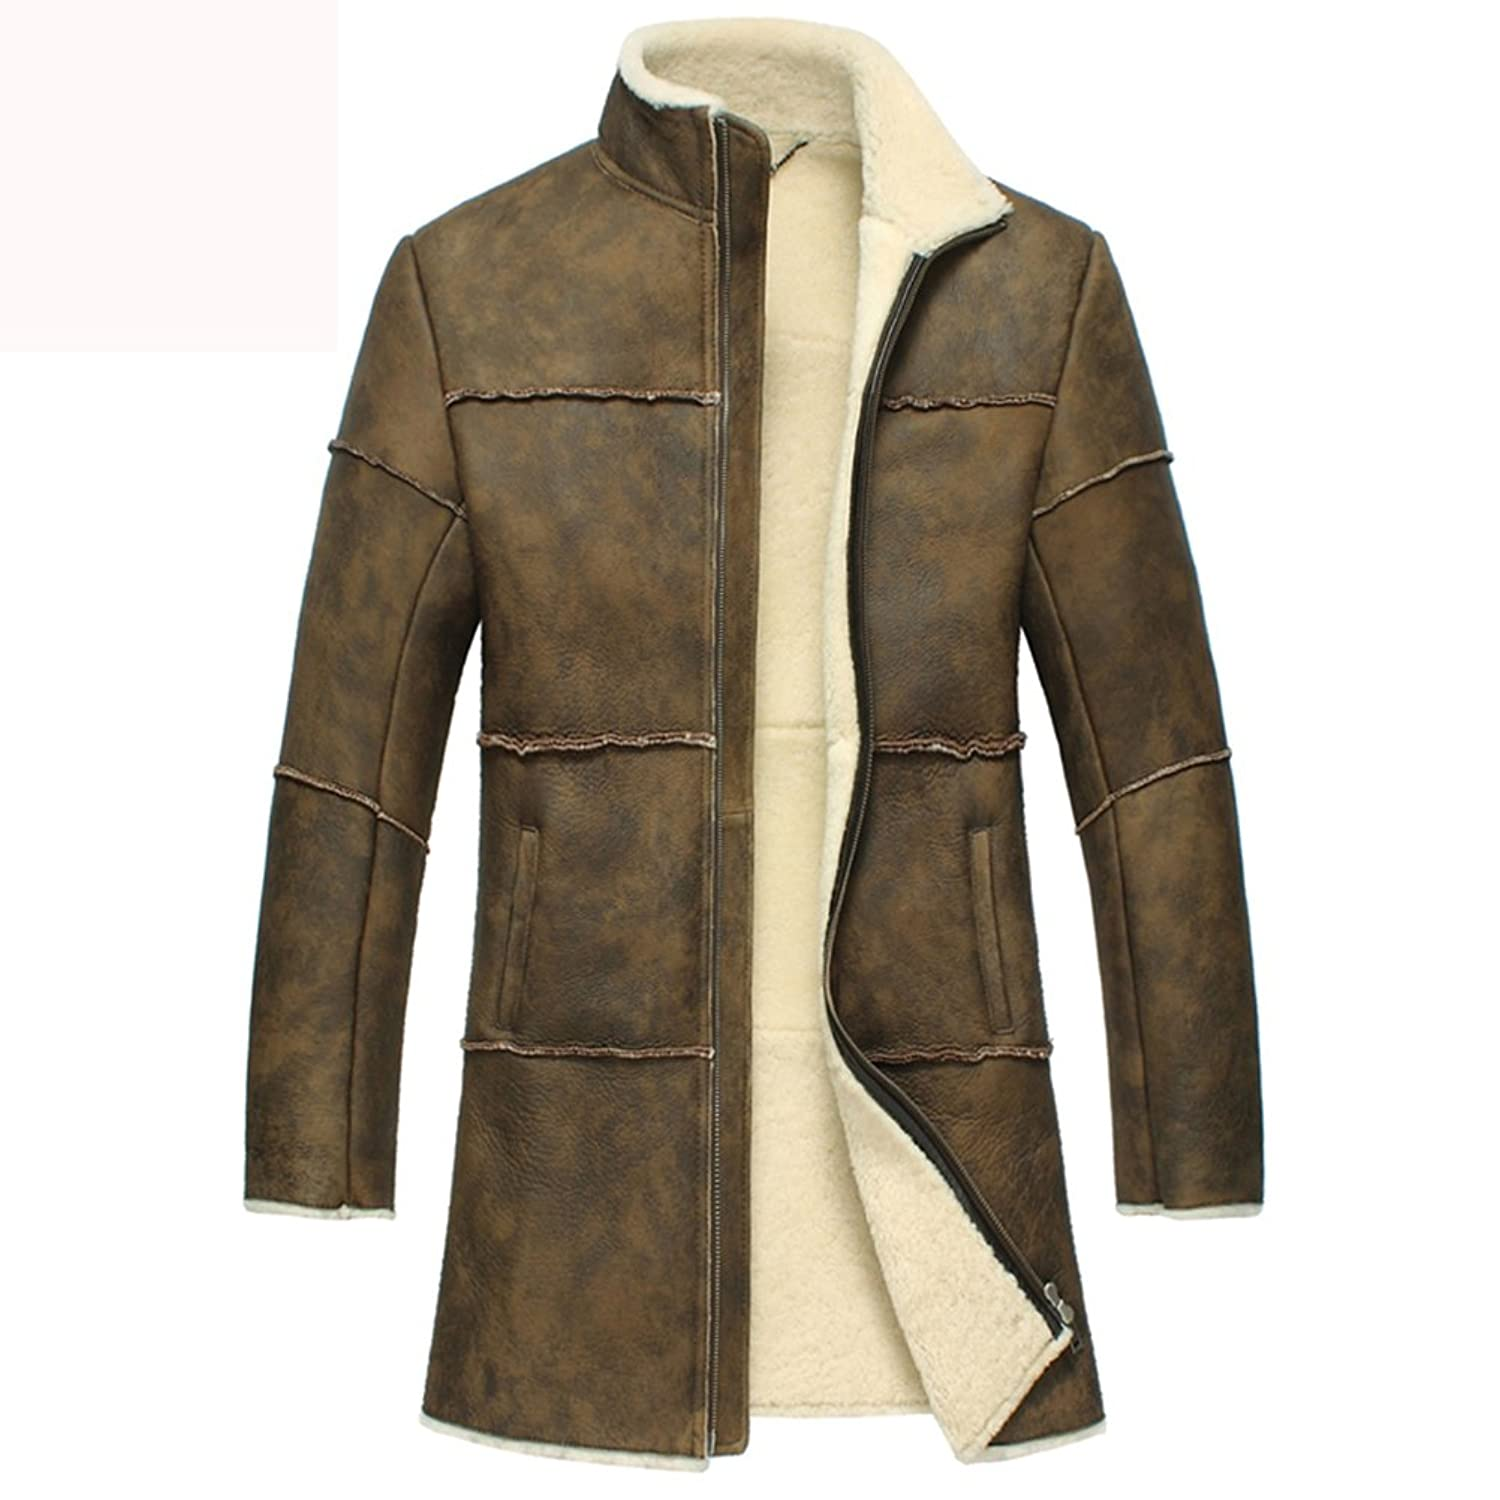 Shearling Coats for Men - Chicago Vintage Shearling Trench Coat